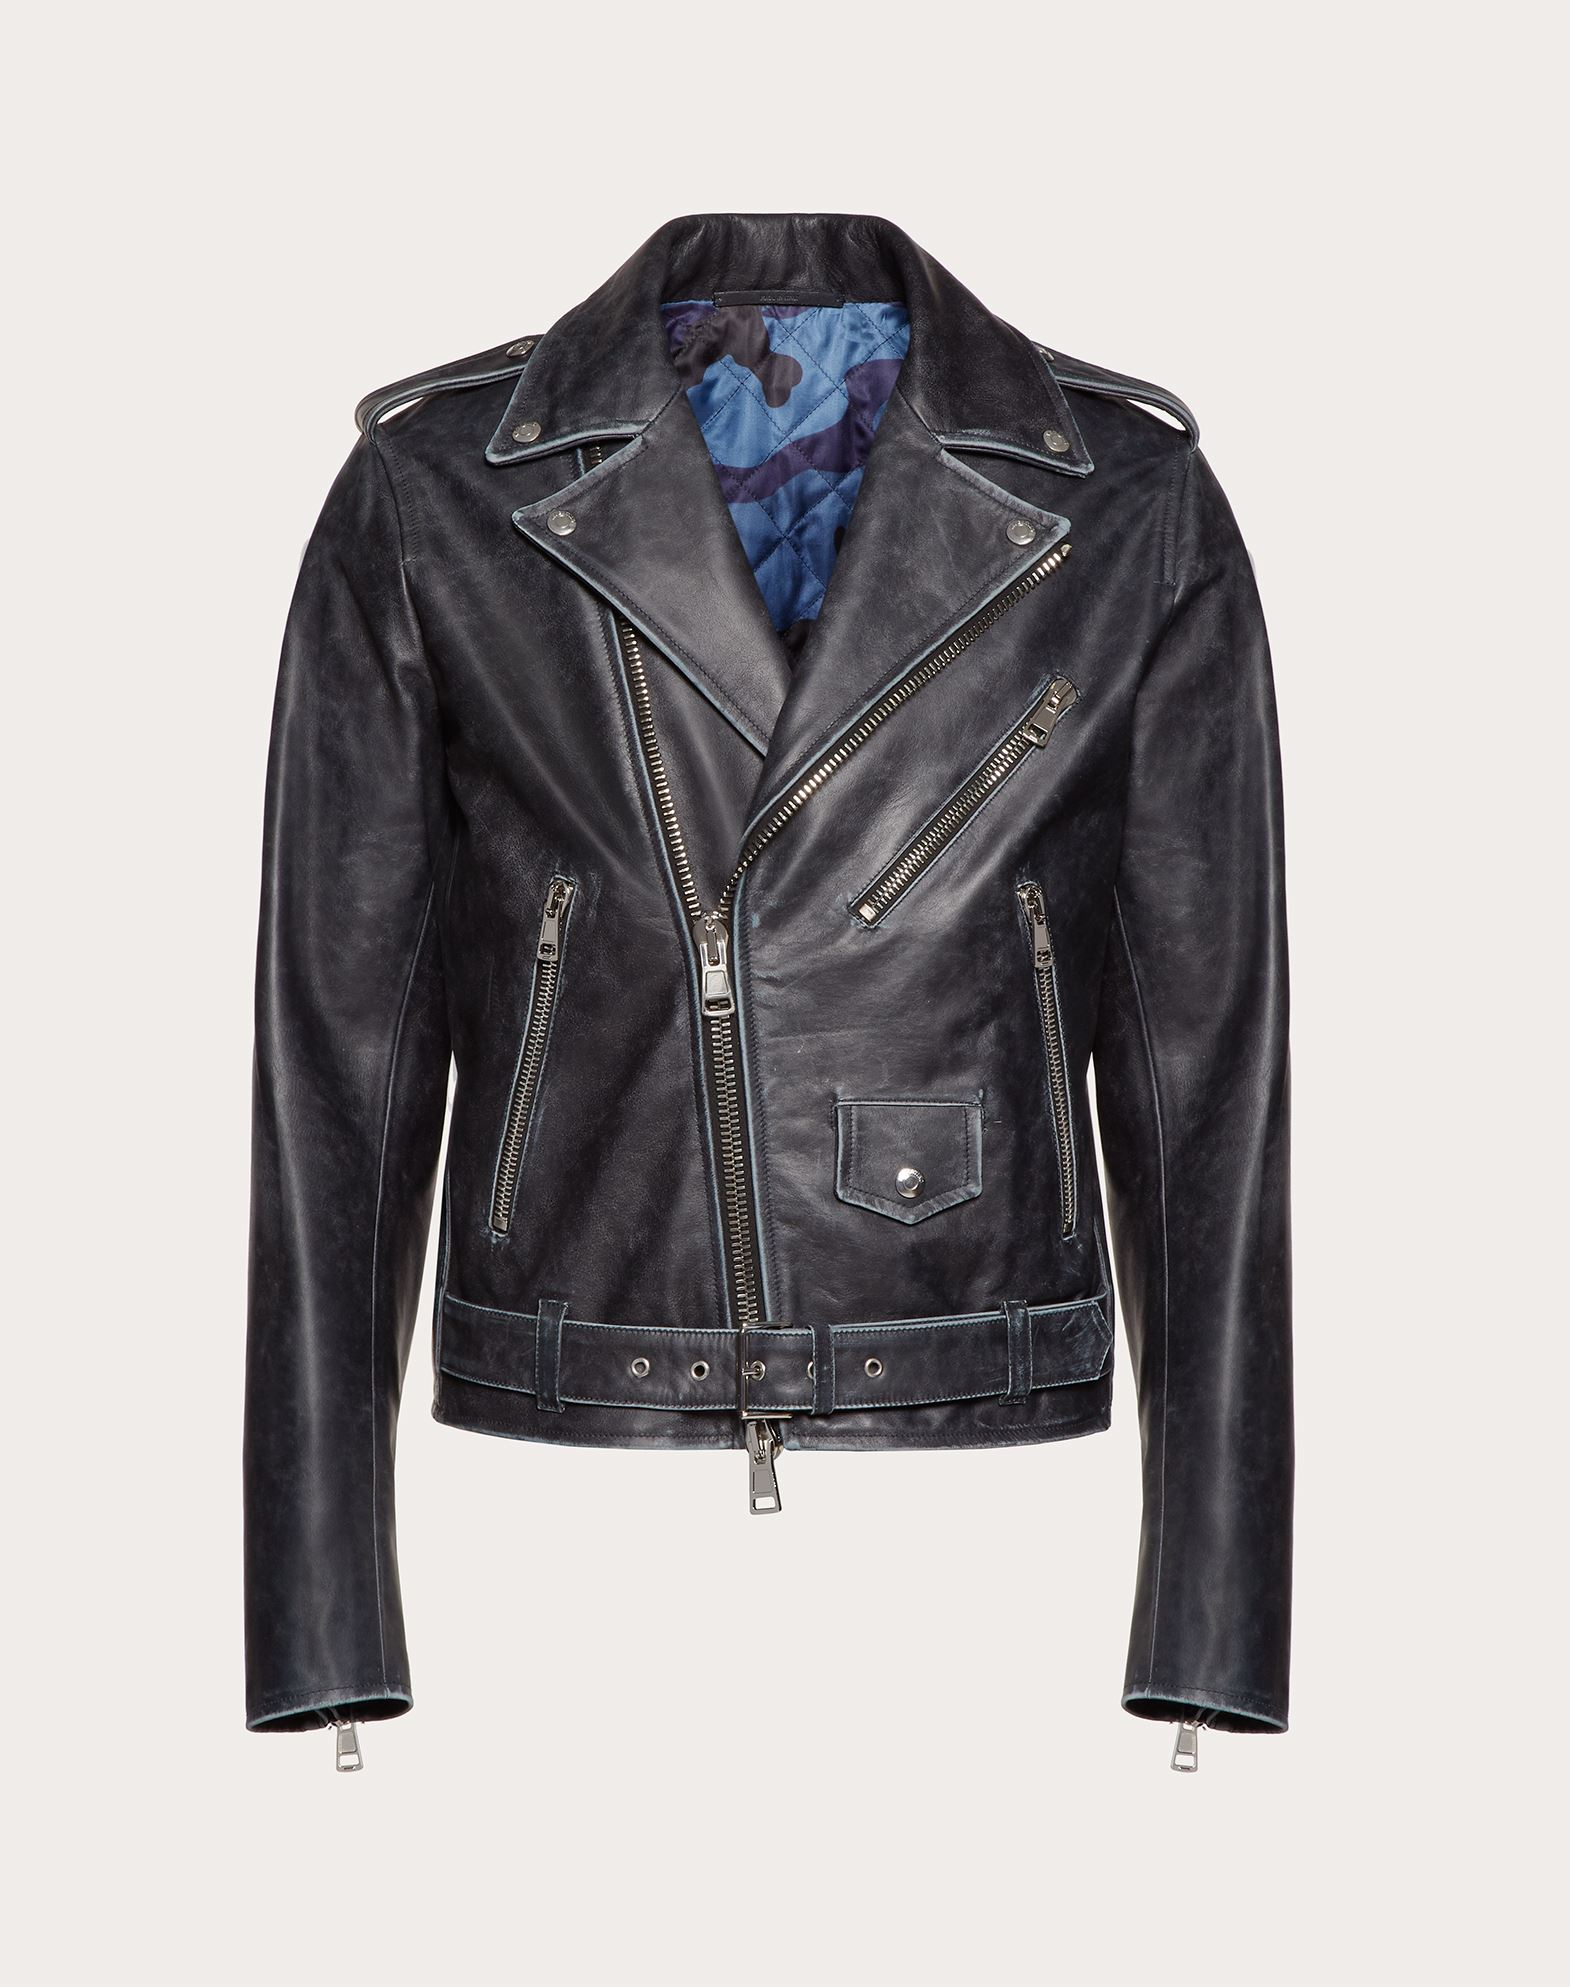 BULLHIDE LEATHER BIKER JACKET